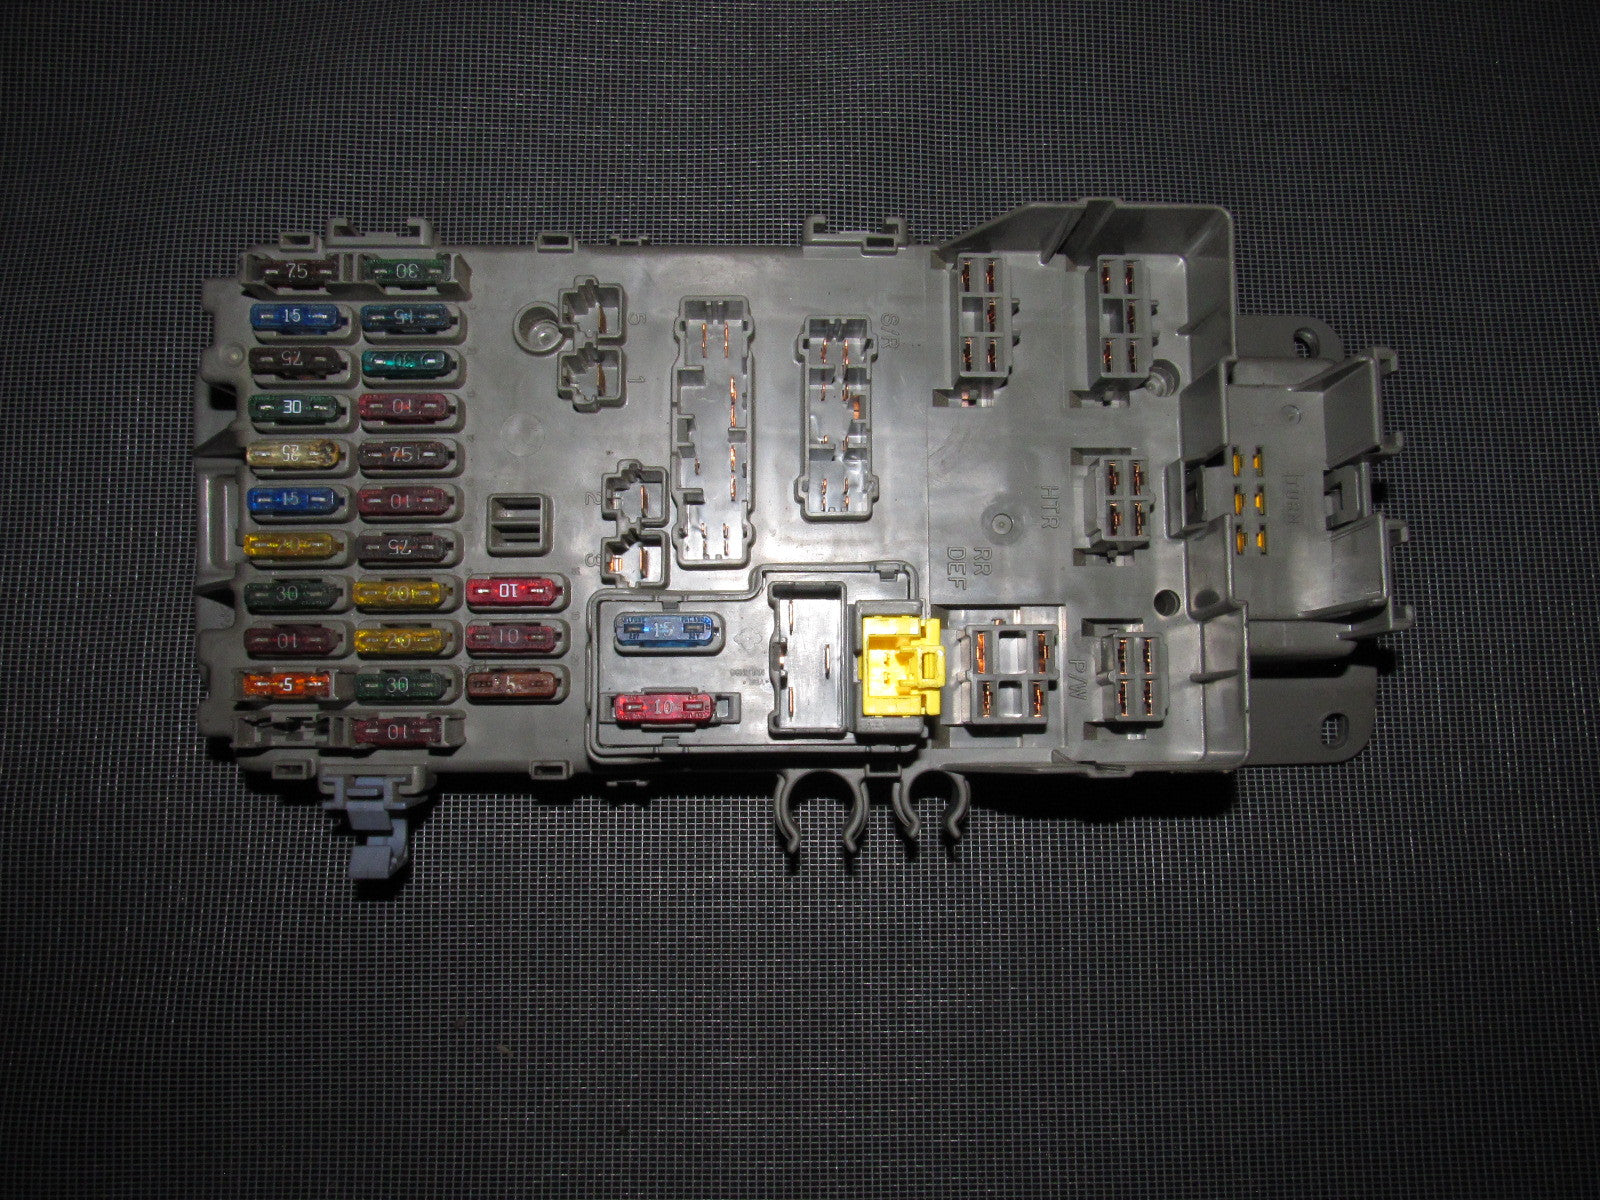 97 Honda Prelude Fuse Box Trusted Wiring Diagram Ford Contour Location 92 93 94 95 96 Si H23 Oem Interior